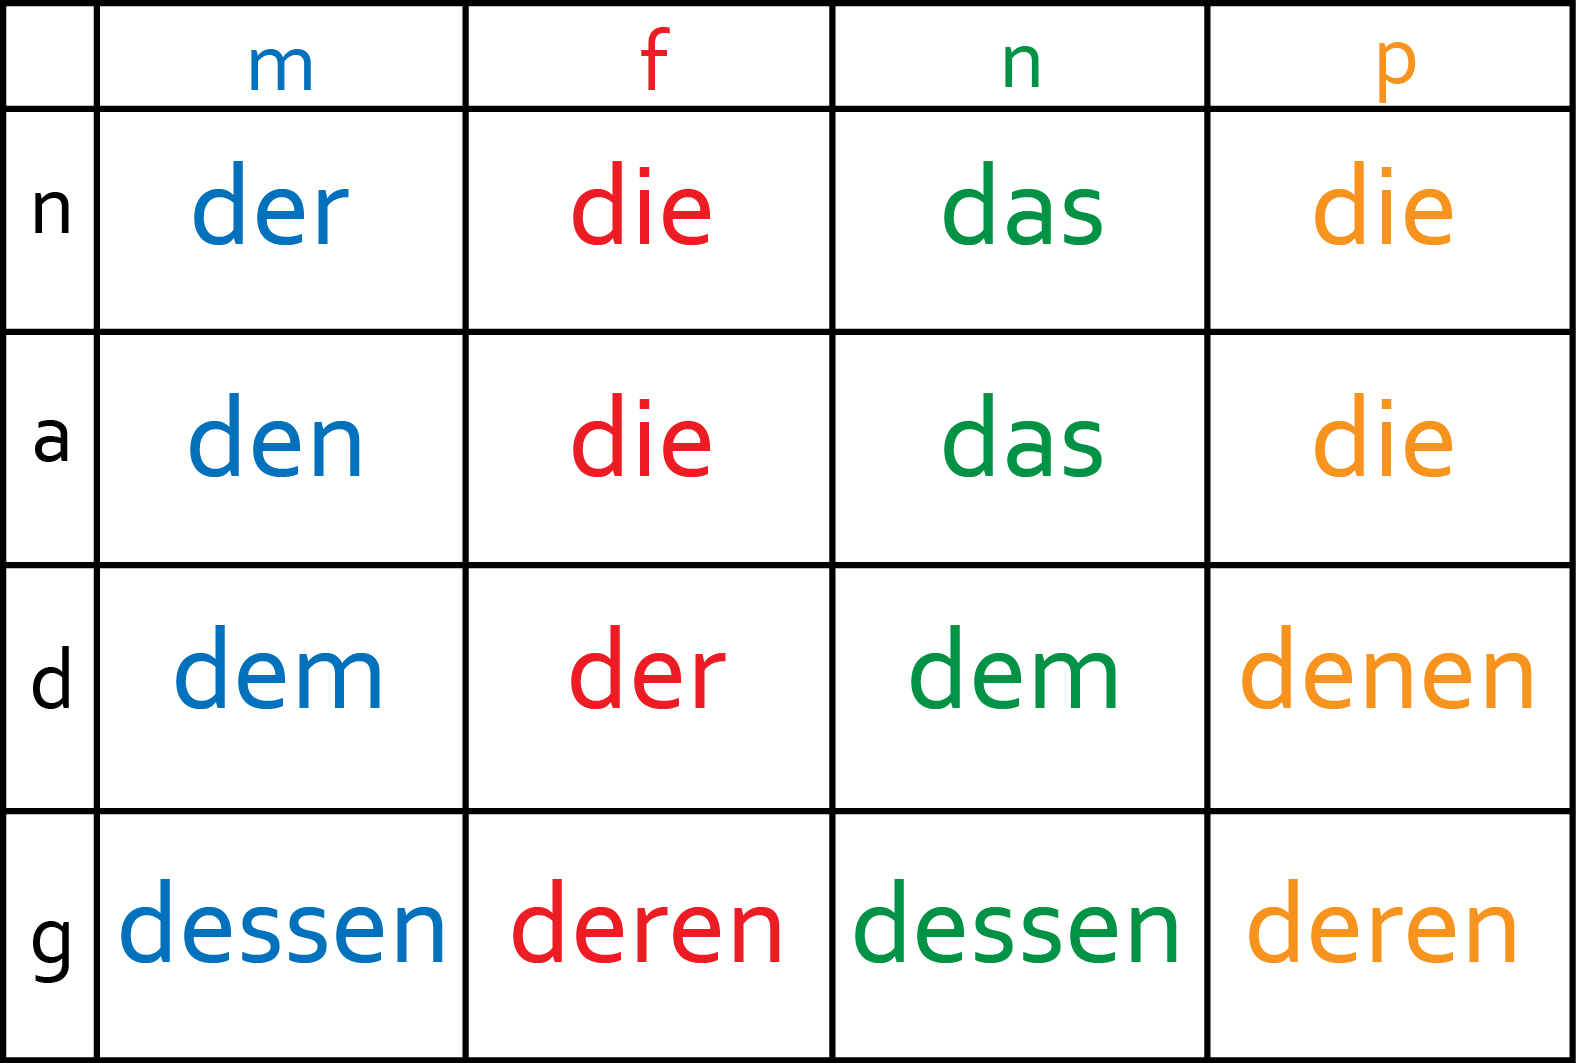 Guten Morgen Grammar Relative Clauses Are About Togetherness